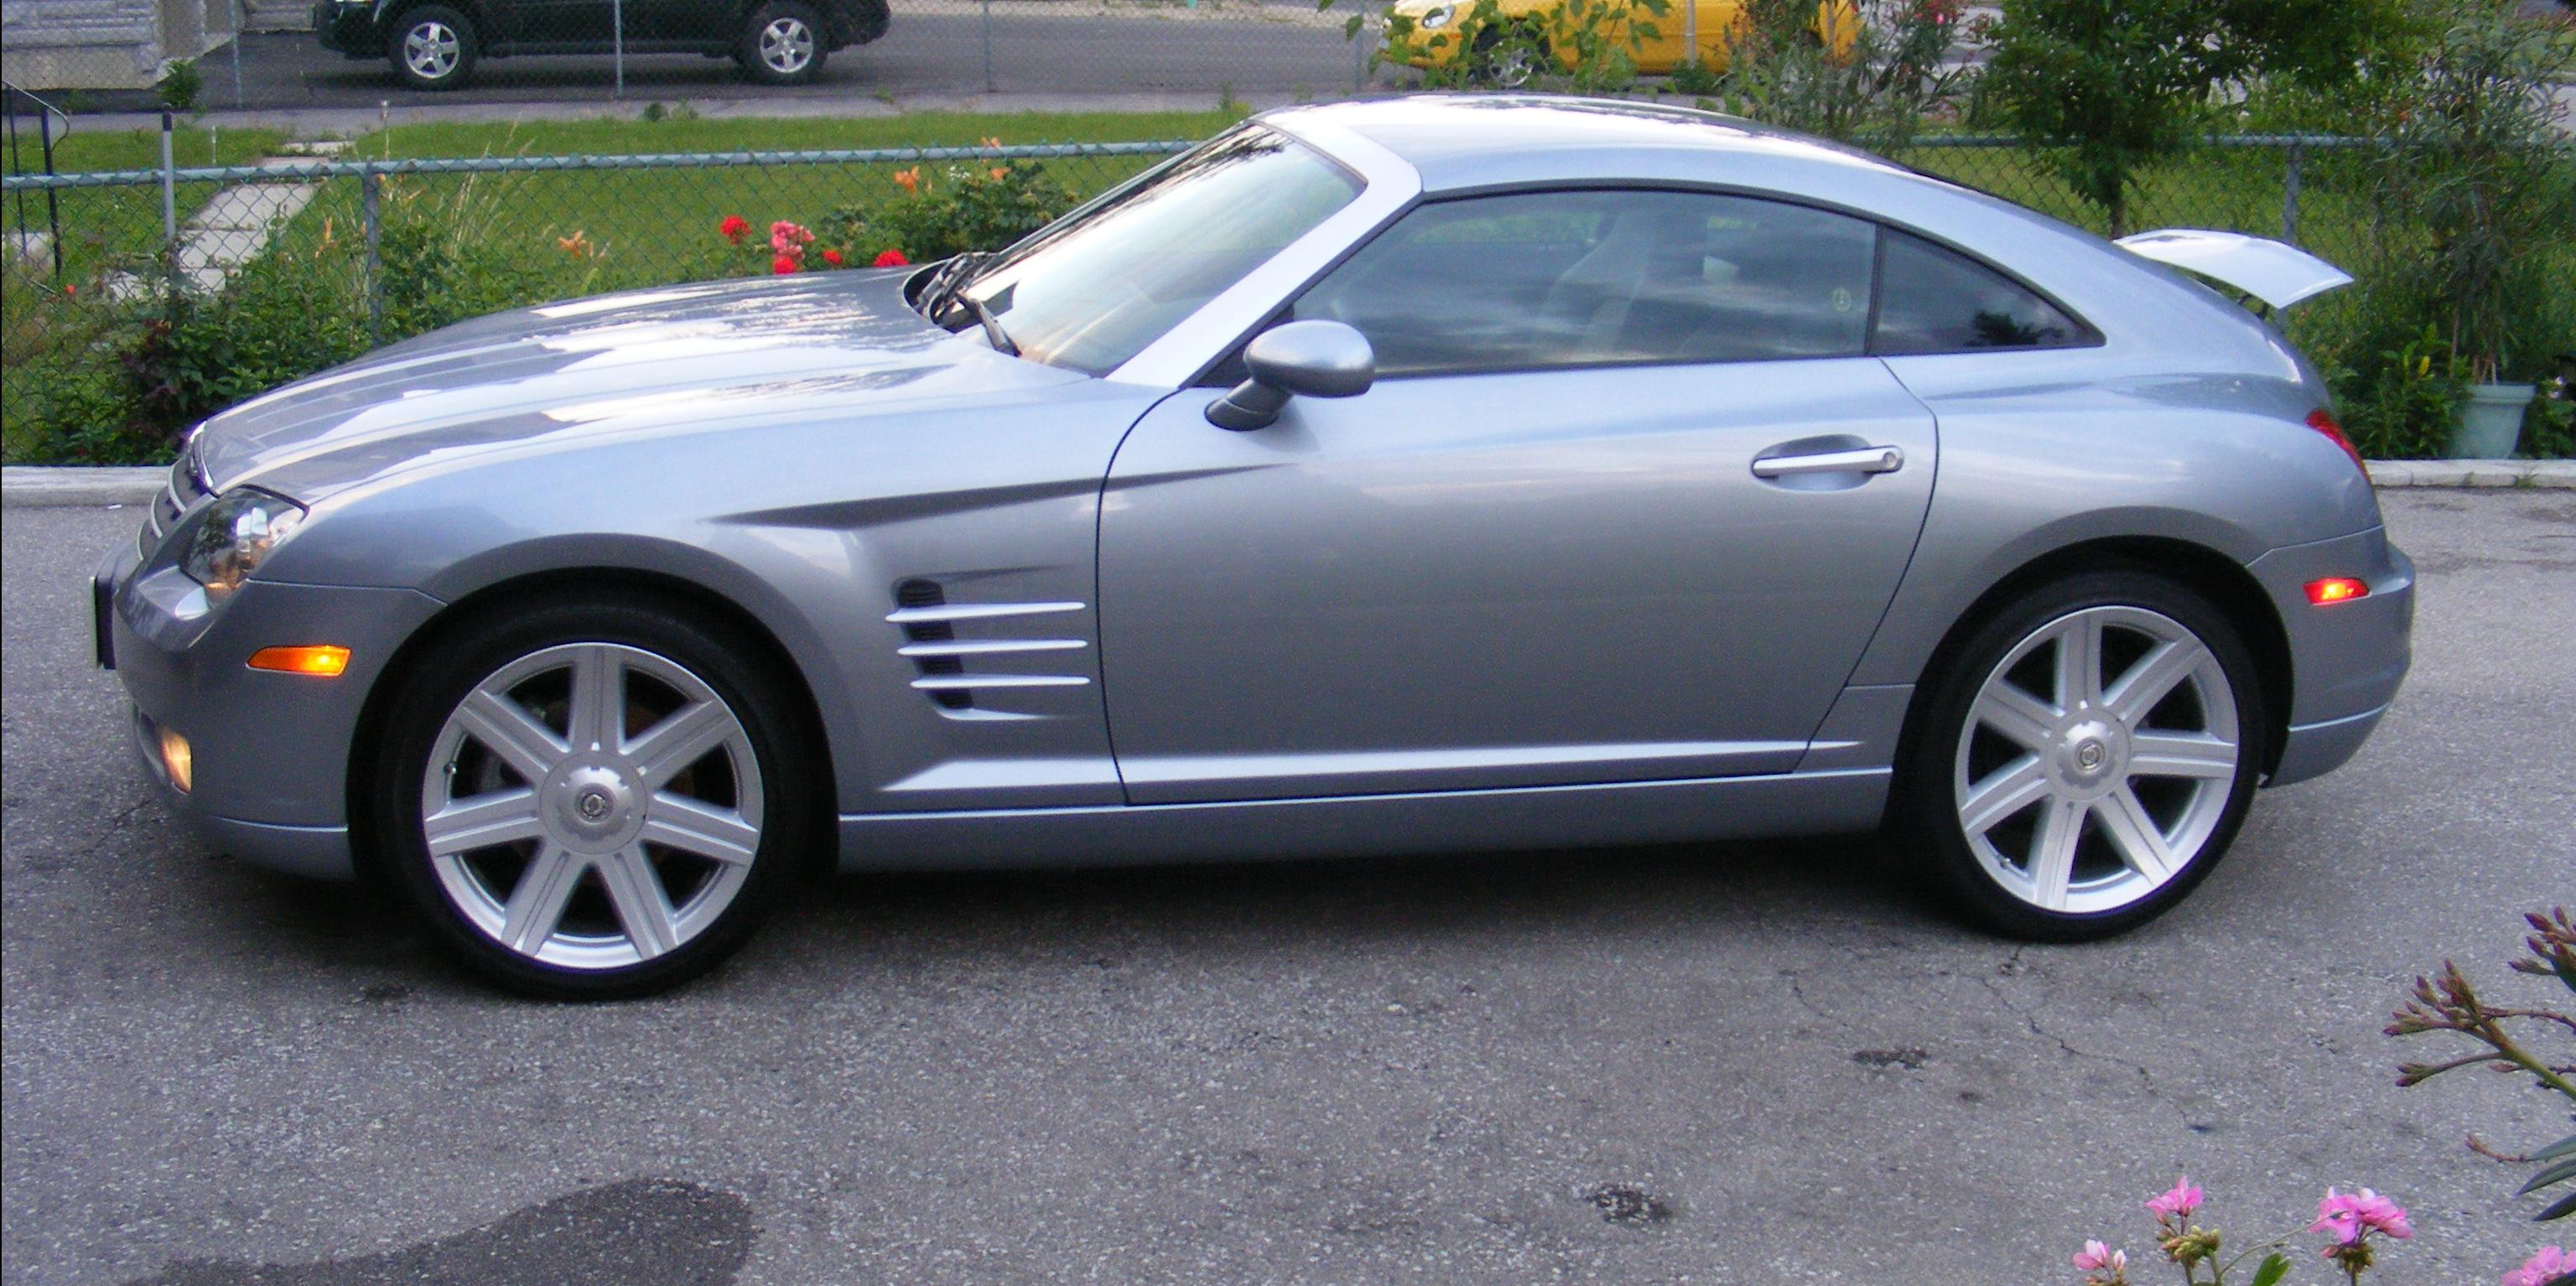 ... crossfireltd 2005 Chrysler Crossfire ...